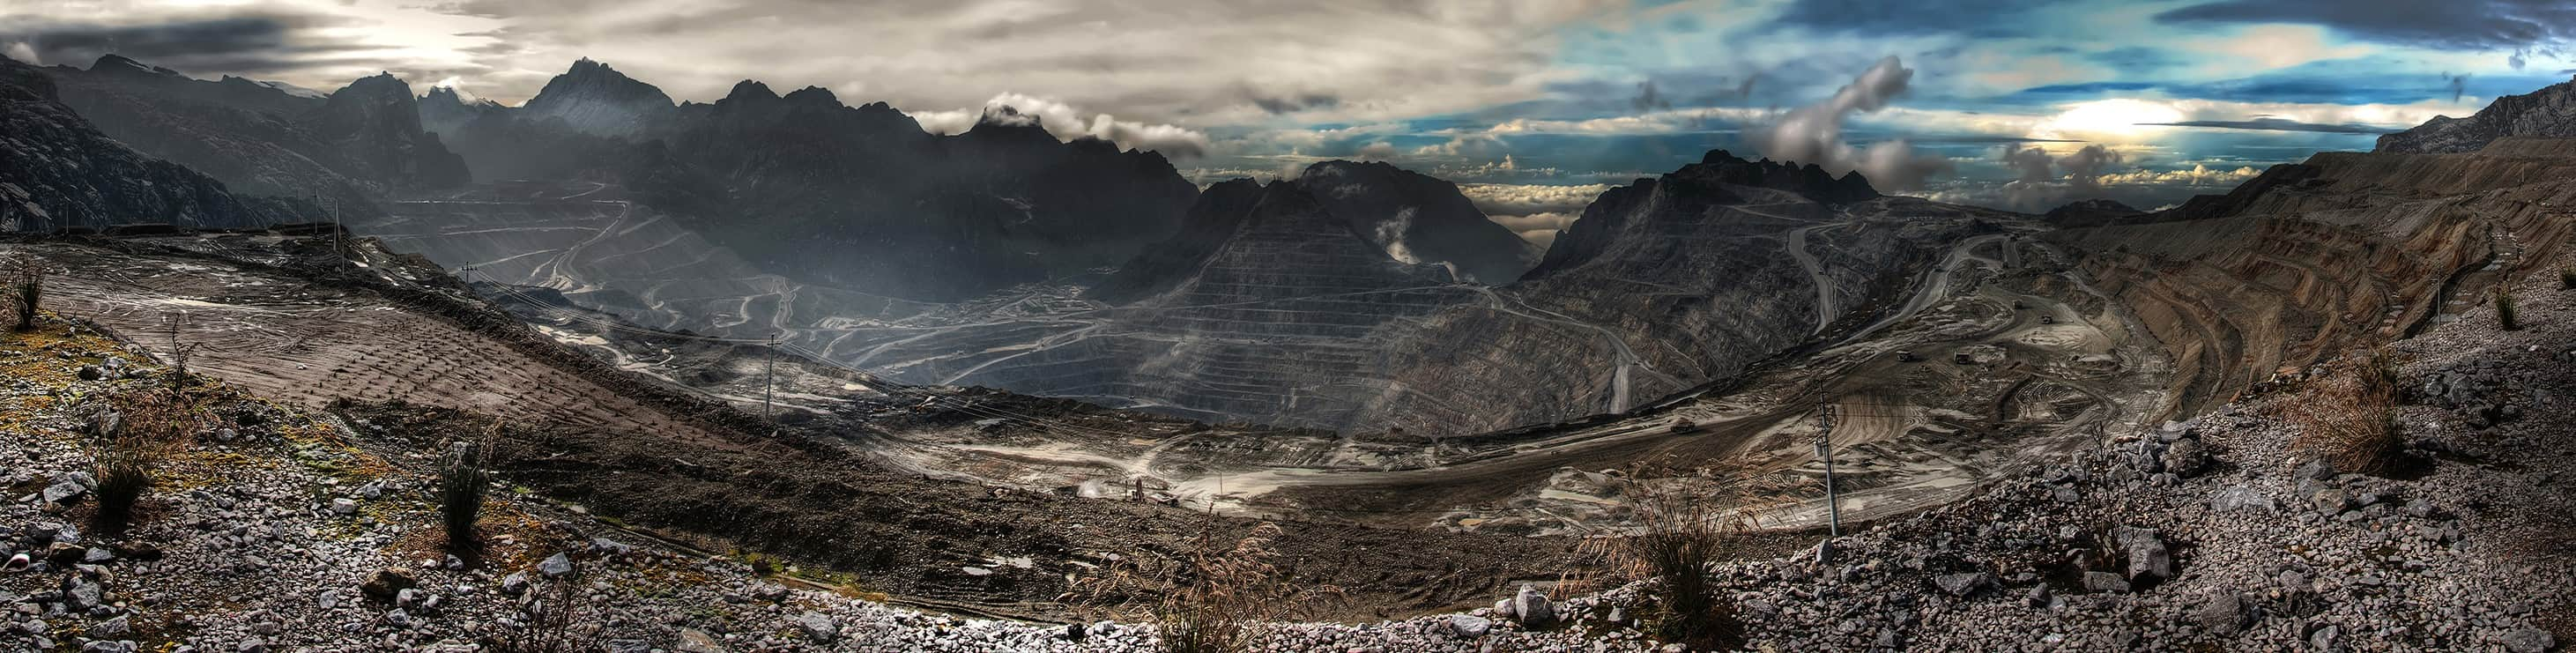 The Grasberg mining complex in 2009 (Photo: Richard Jones/Flickr)